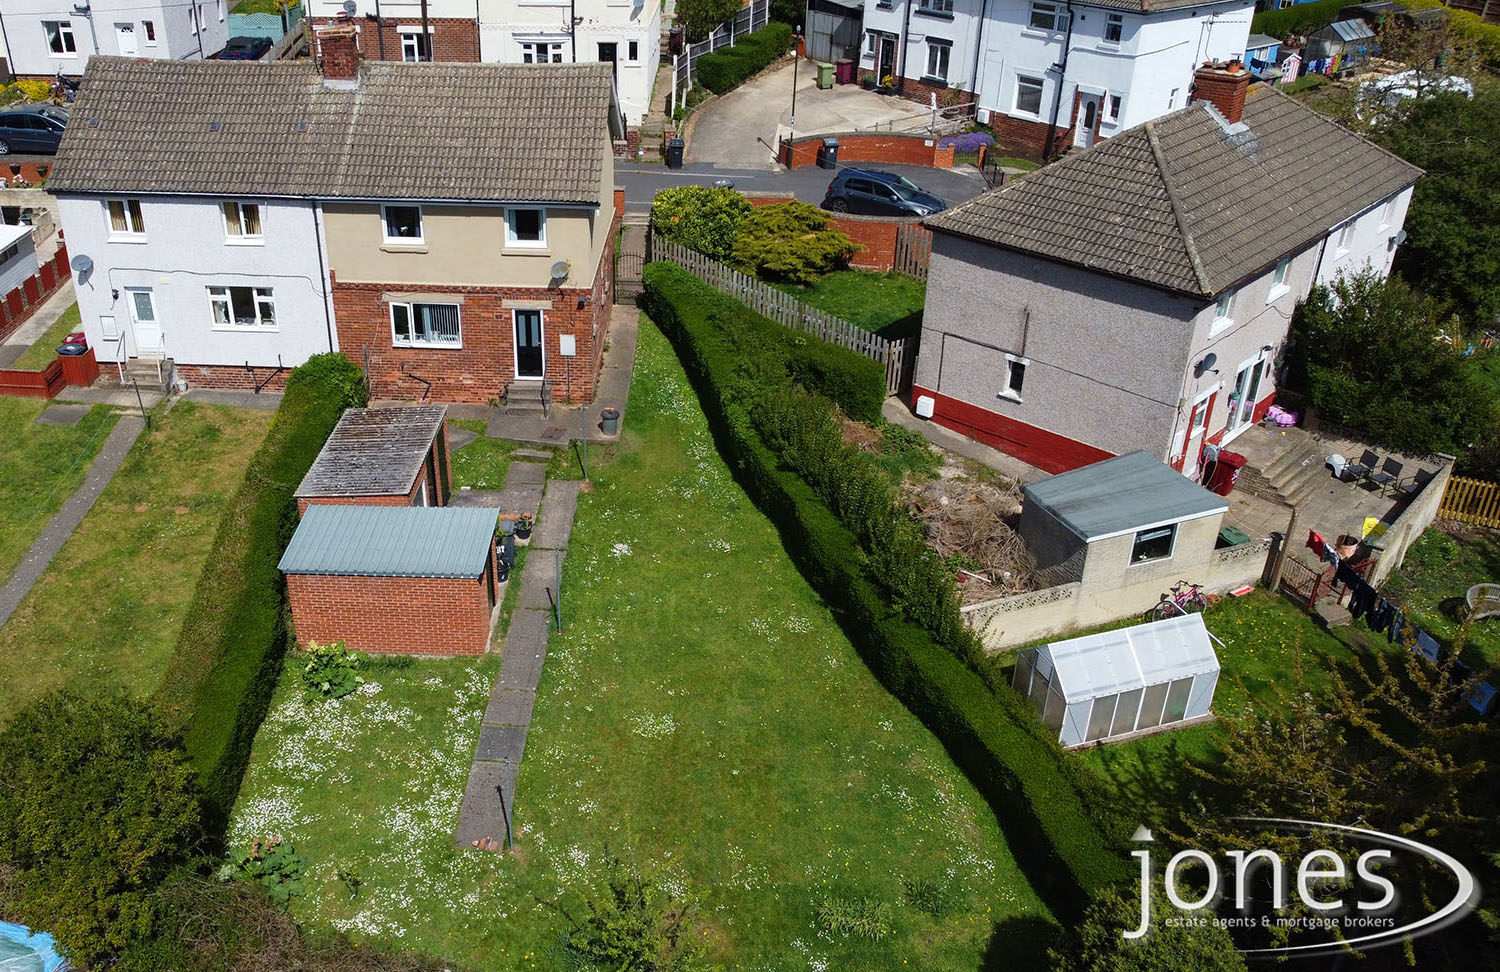 Home for Sale Let - Photo 14 Mill Crescent, Whitwell, Worksop, S80 4SF